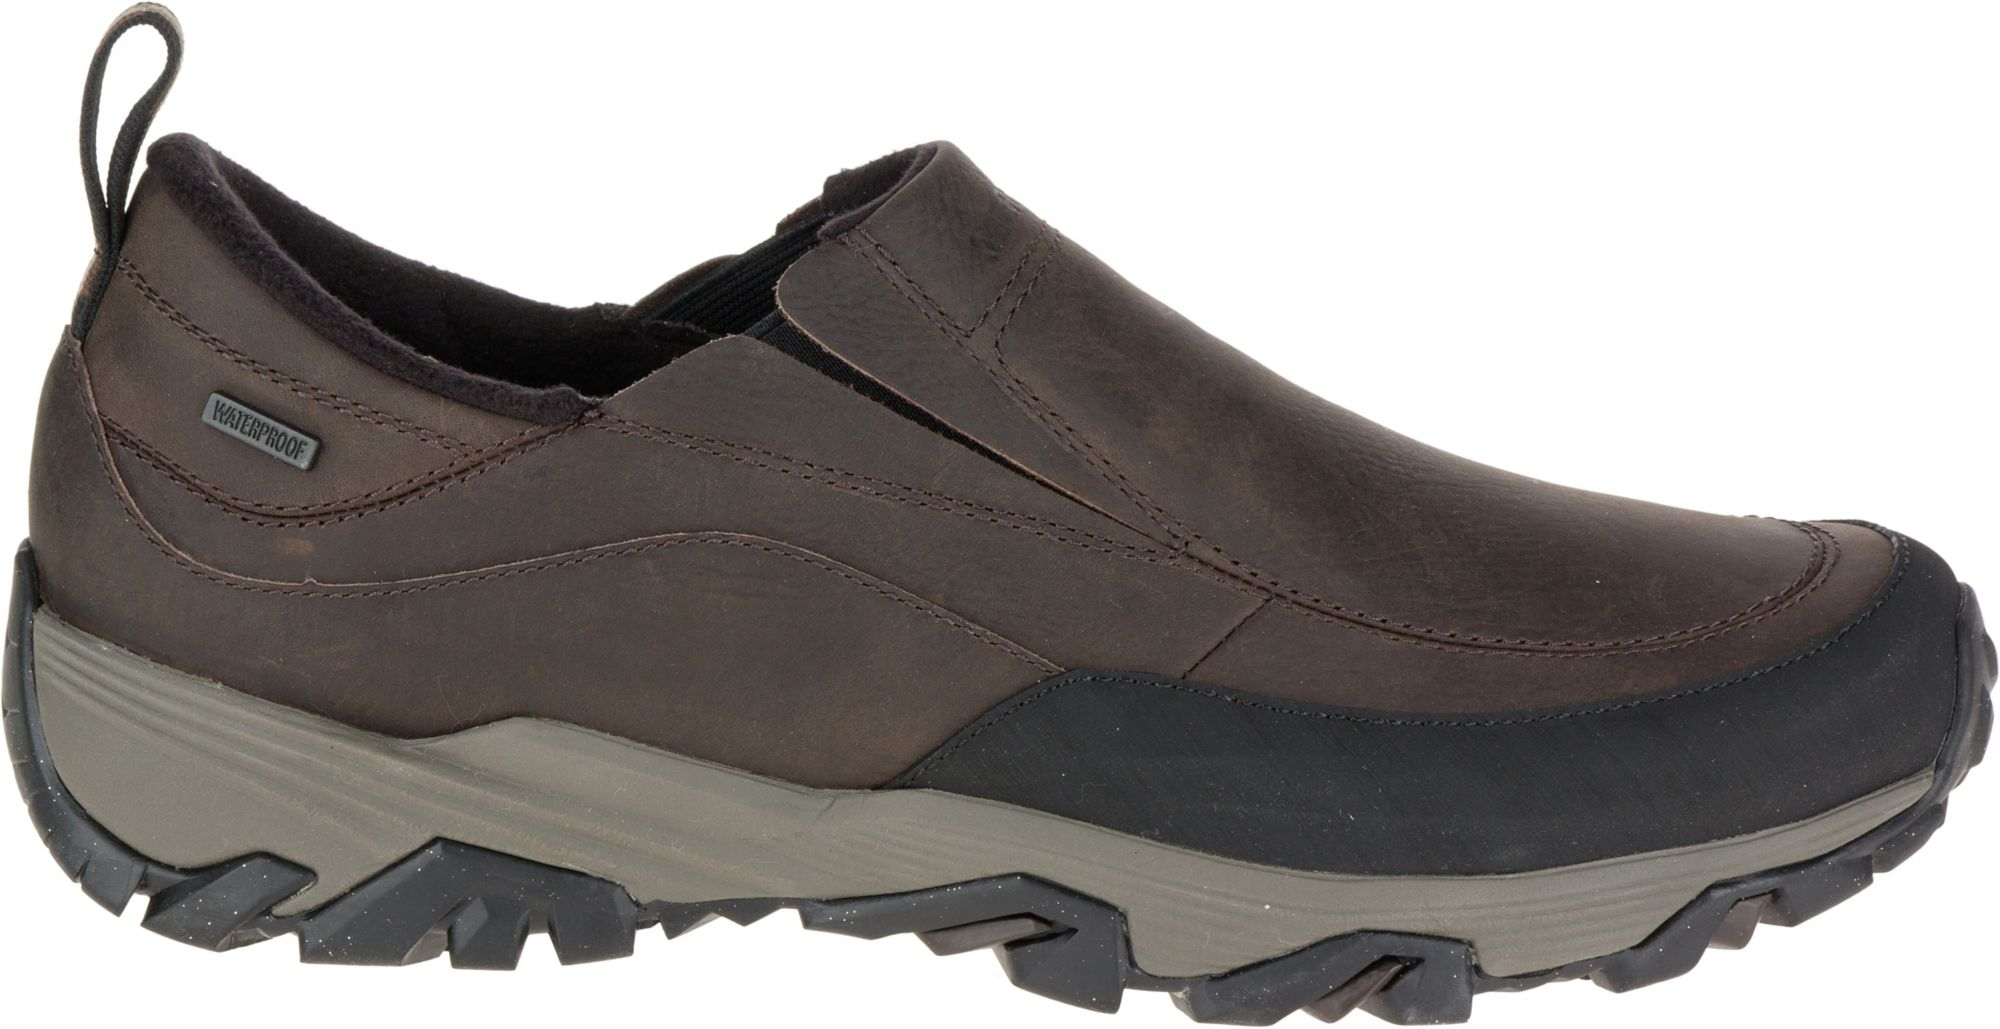 Merrell Coldpack Ice+ Moc Waterproof (Black) Mens Shoes Shopping Online High Quality Discount Authentic Online Free Shipping Hot Sale Prices Online Outlet Get Authentic M4V4RPQRC